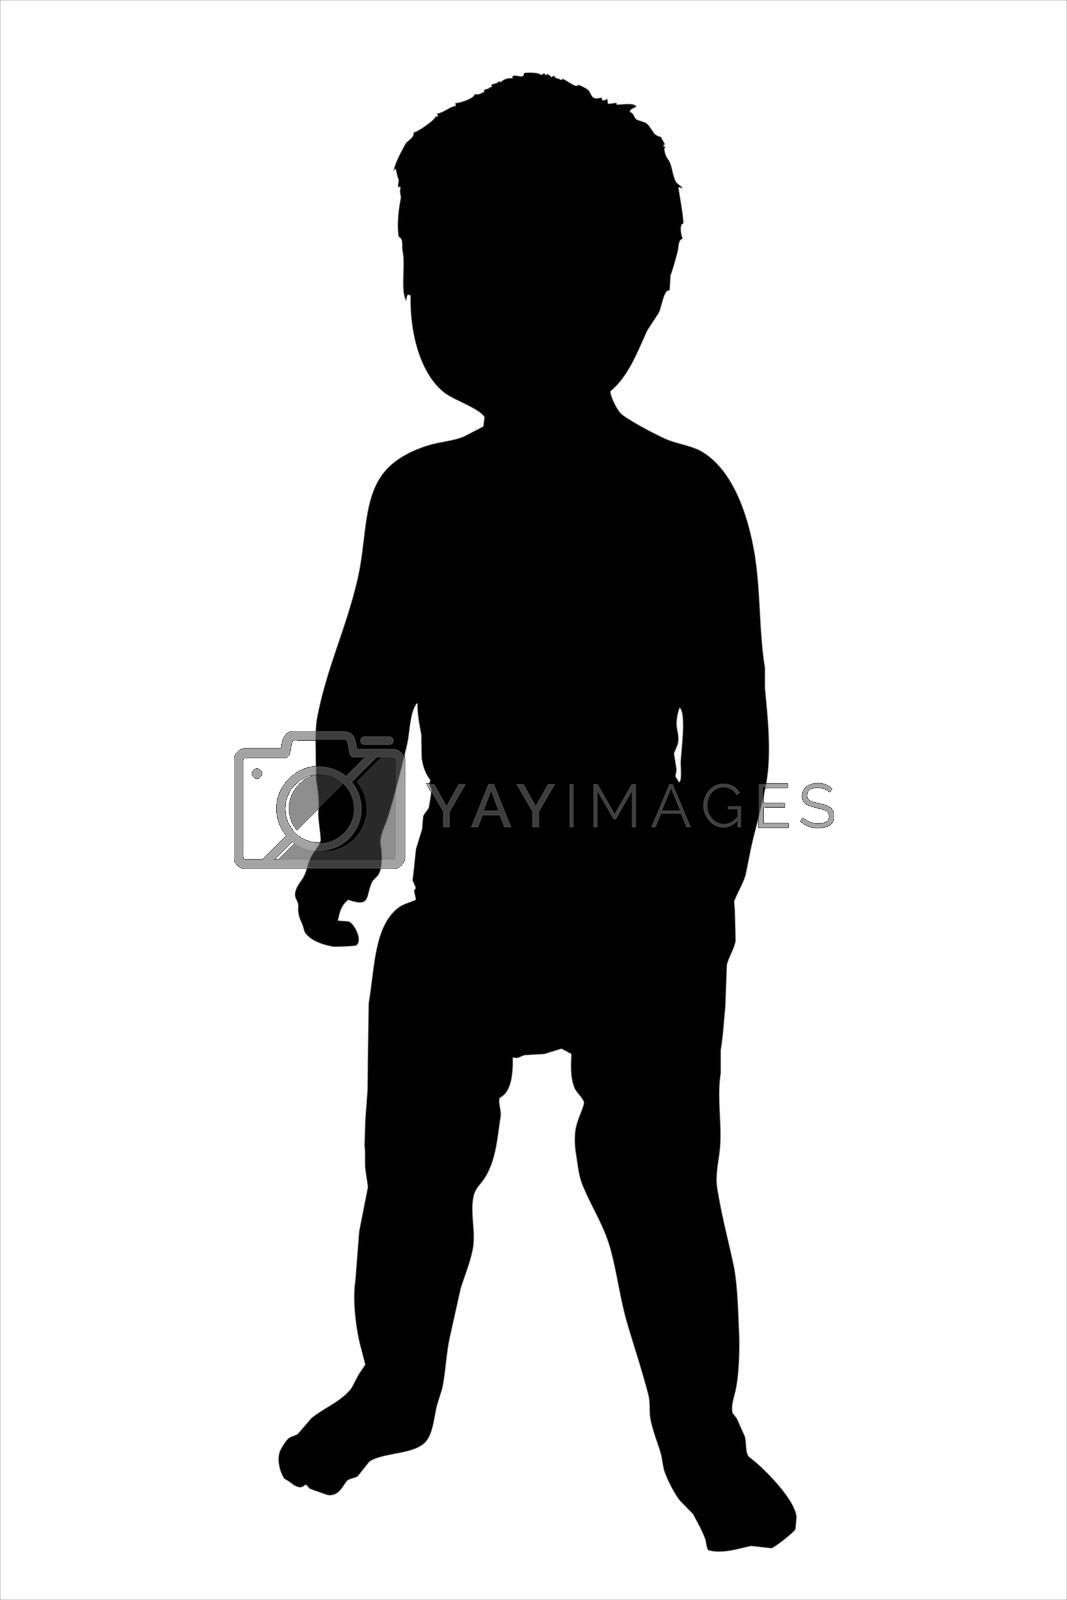 An illustration of a toddler isolated on a white background.